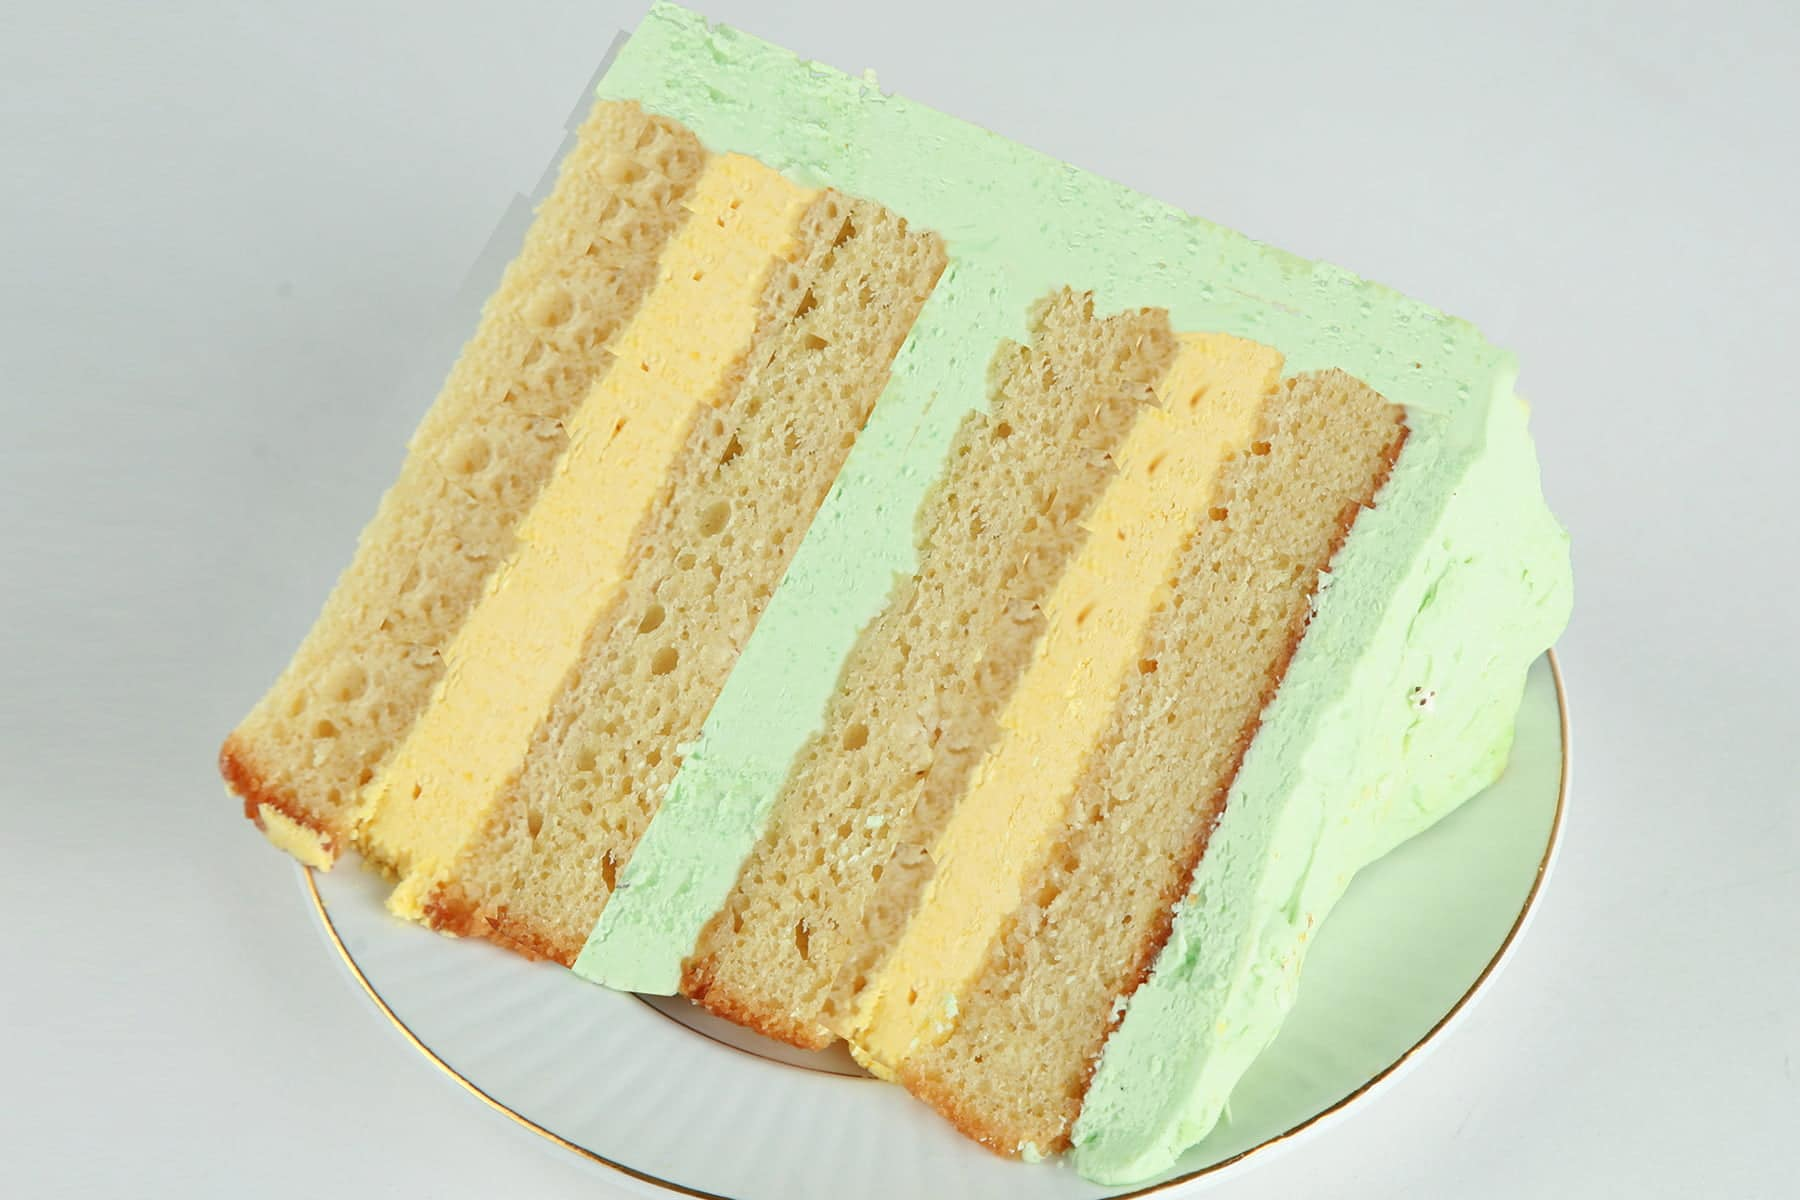 A slice of mango mojito torte. 4 layers of a mango rum cake, separated by layers of mango and mint buttercream.